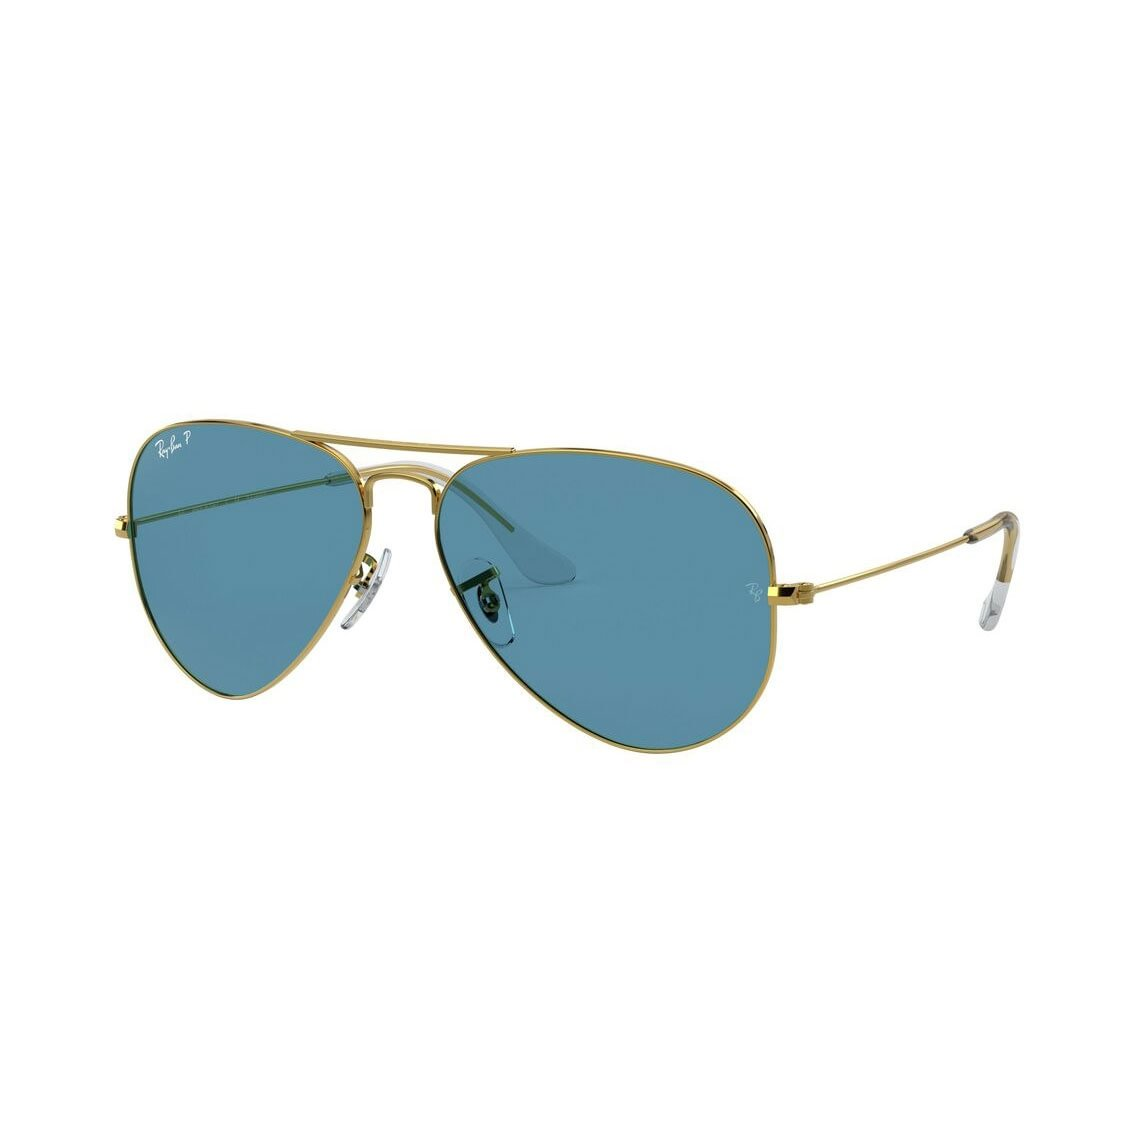 Ray-Ban Aviator Large Metal RB3025 9196S2 55